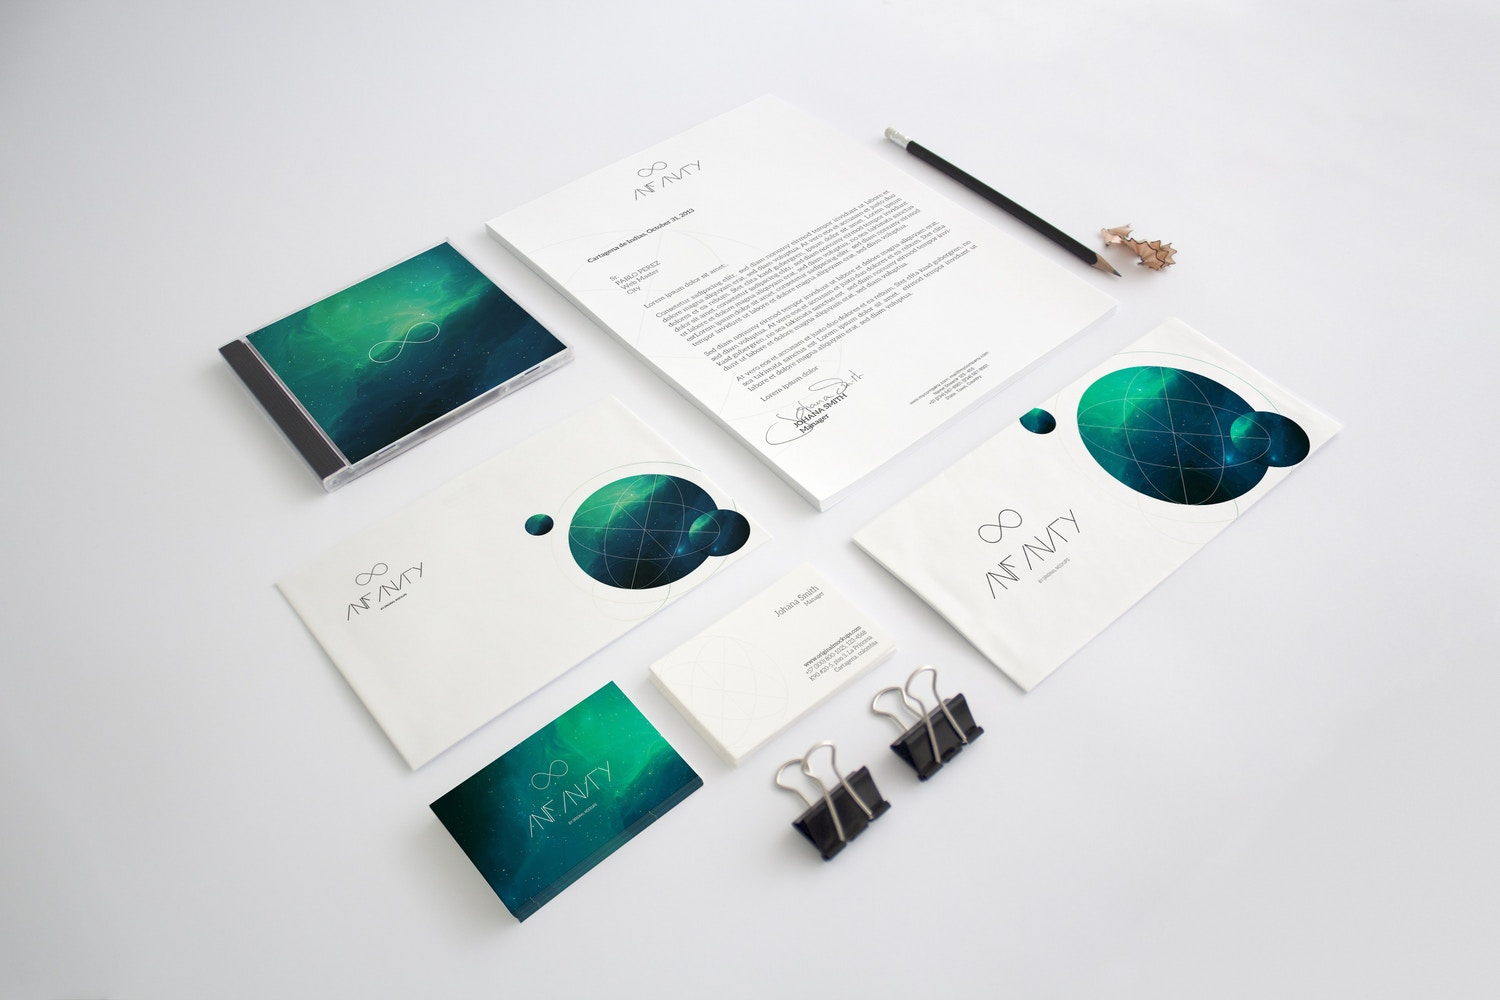 Stationery Mockup 2 by Original Mockups on Original Mockups